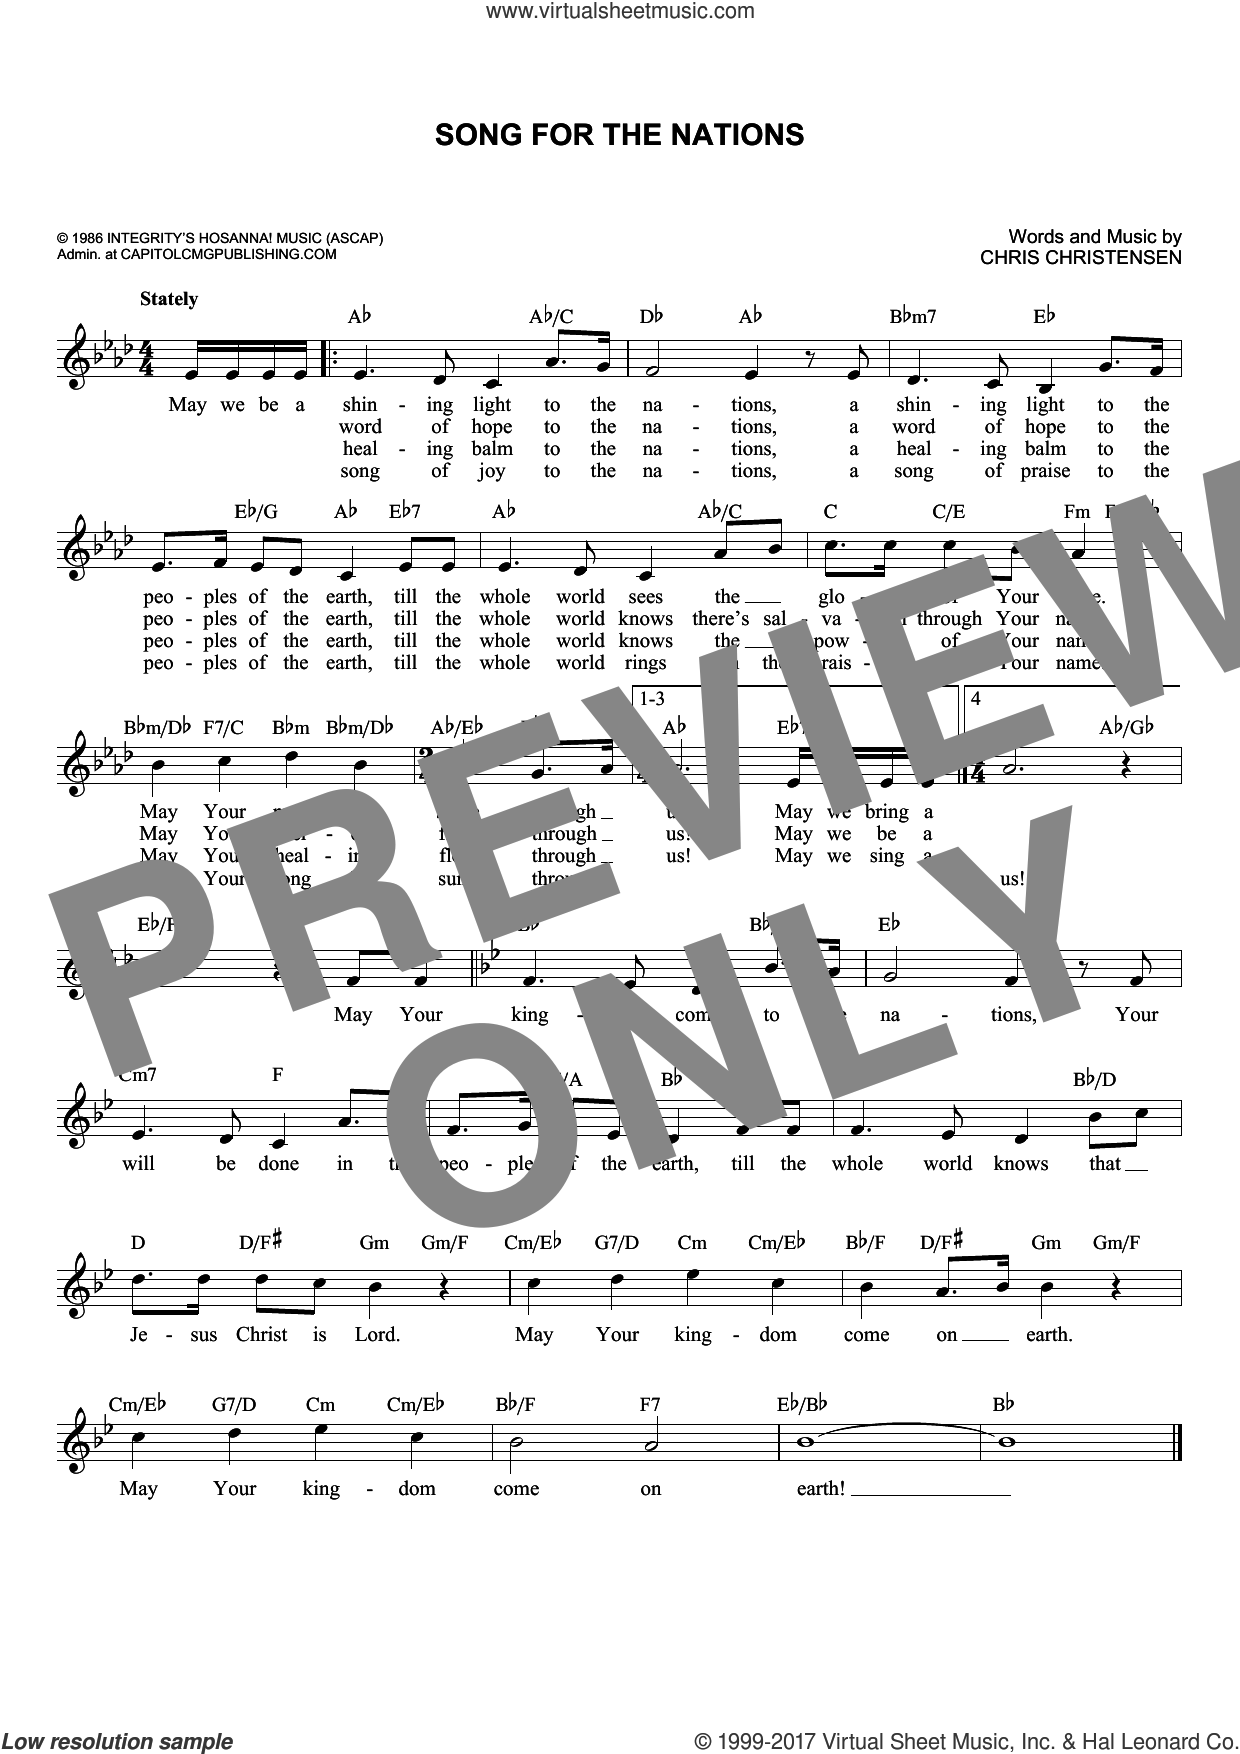 Song For The Nations sheet music for voice and other instruments (fake book) by Chris Christensen, intermediate skill level